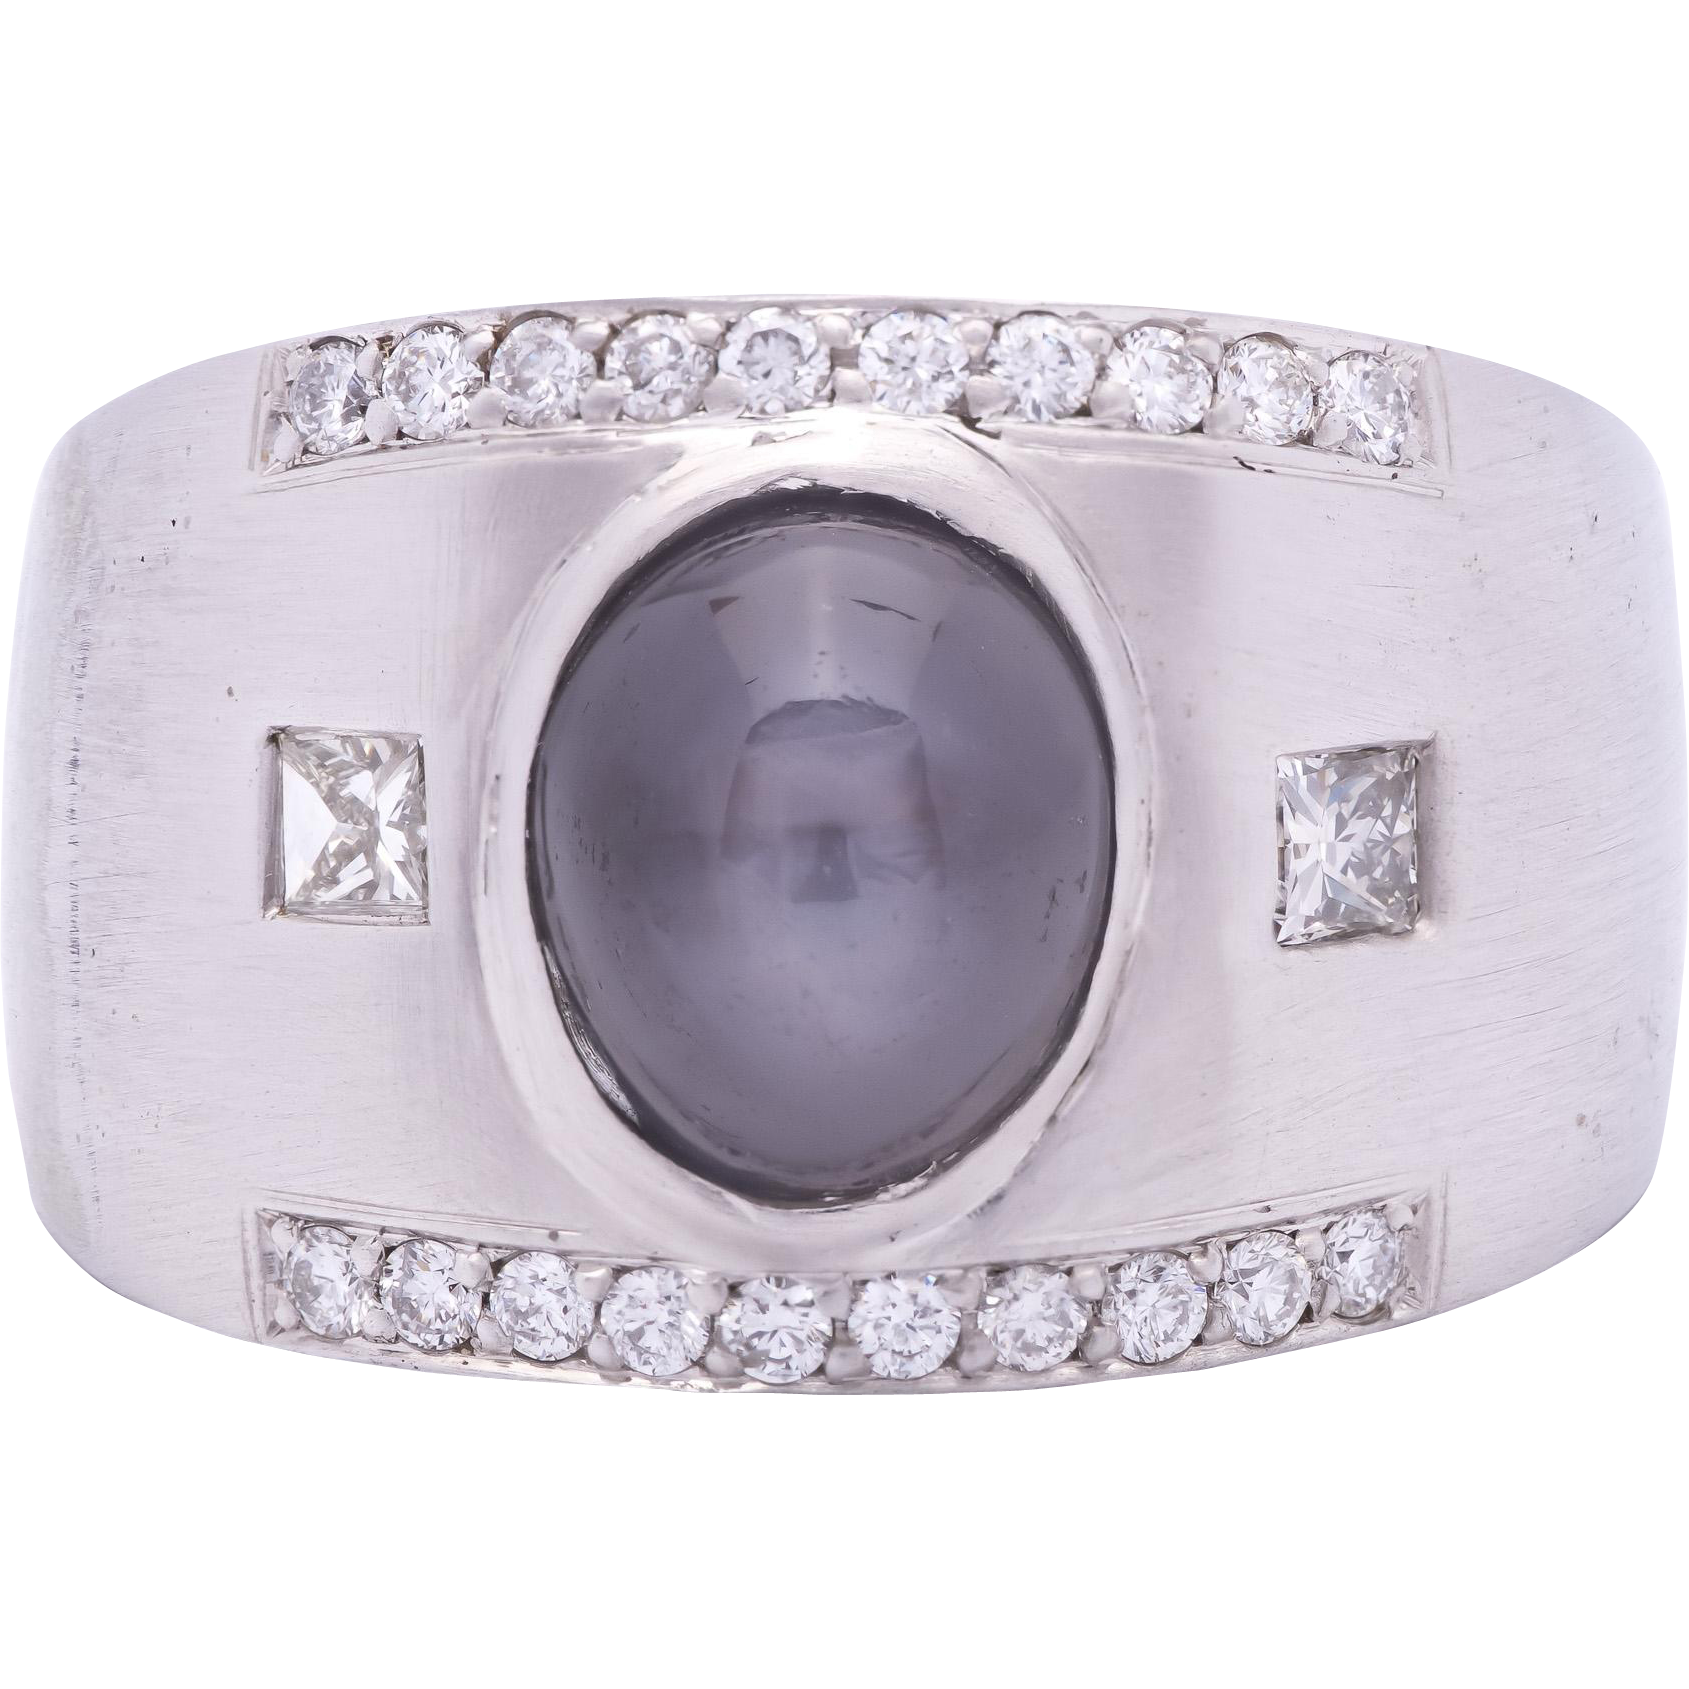 Men's 14K White Gold Ring with Natural Star Sapphire accented with Diamonds